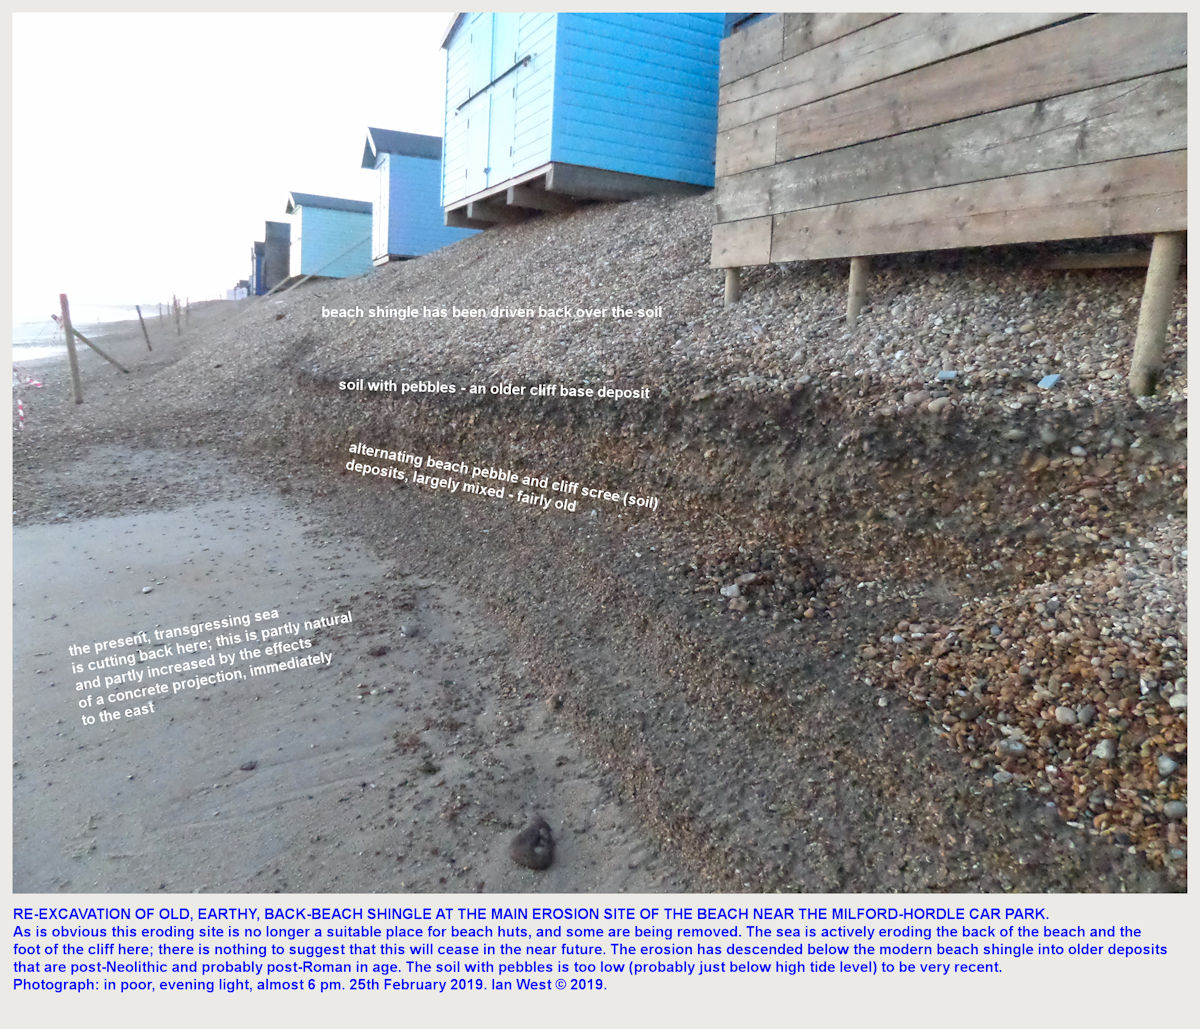 Details of erosion and exposed deposits near the eastern end of the beach stretch at Milford-on-Sea, Hordle Cliff (West) car park, 25th February 2019 - category huts